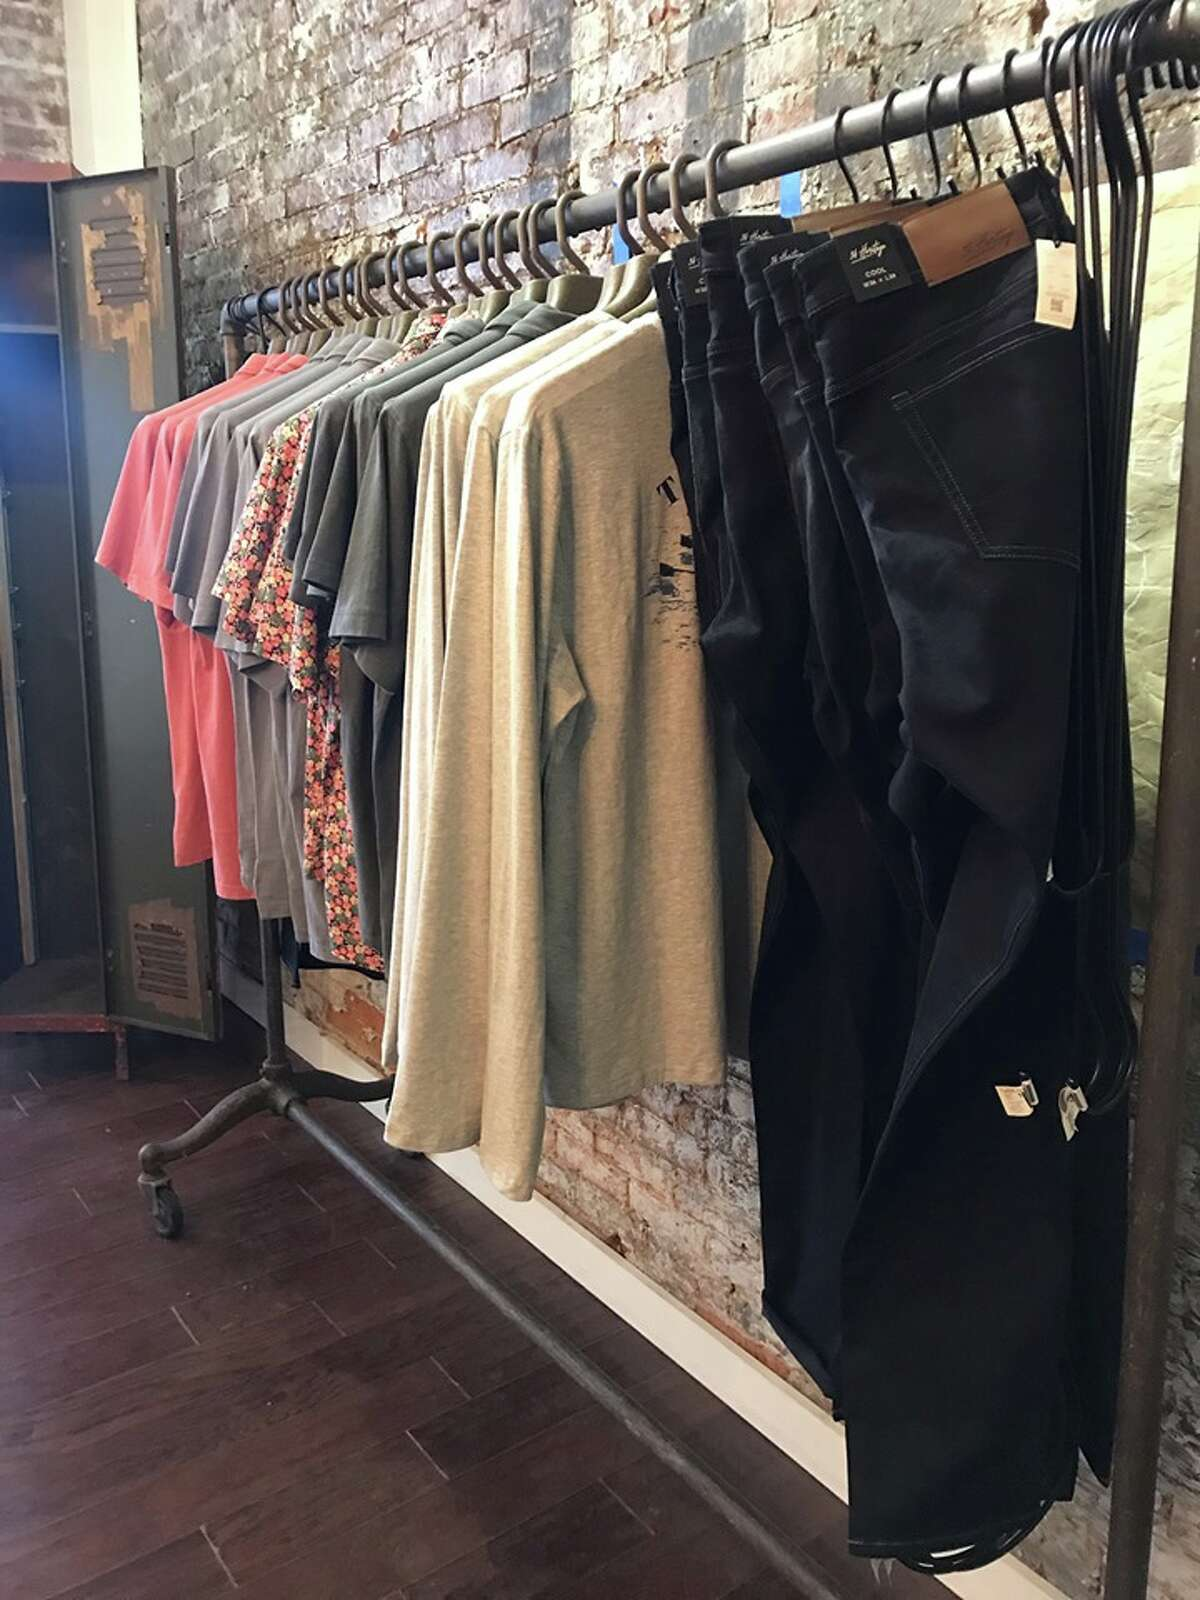 Union Hall Supply Co., a men's clothing store created by local entrepreneur Heidi West, will open on Thursday, July 19, at 437 Broadway in Saratoga Springs.